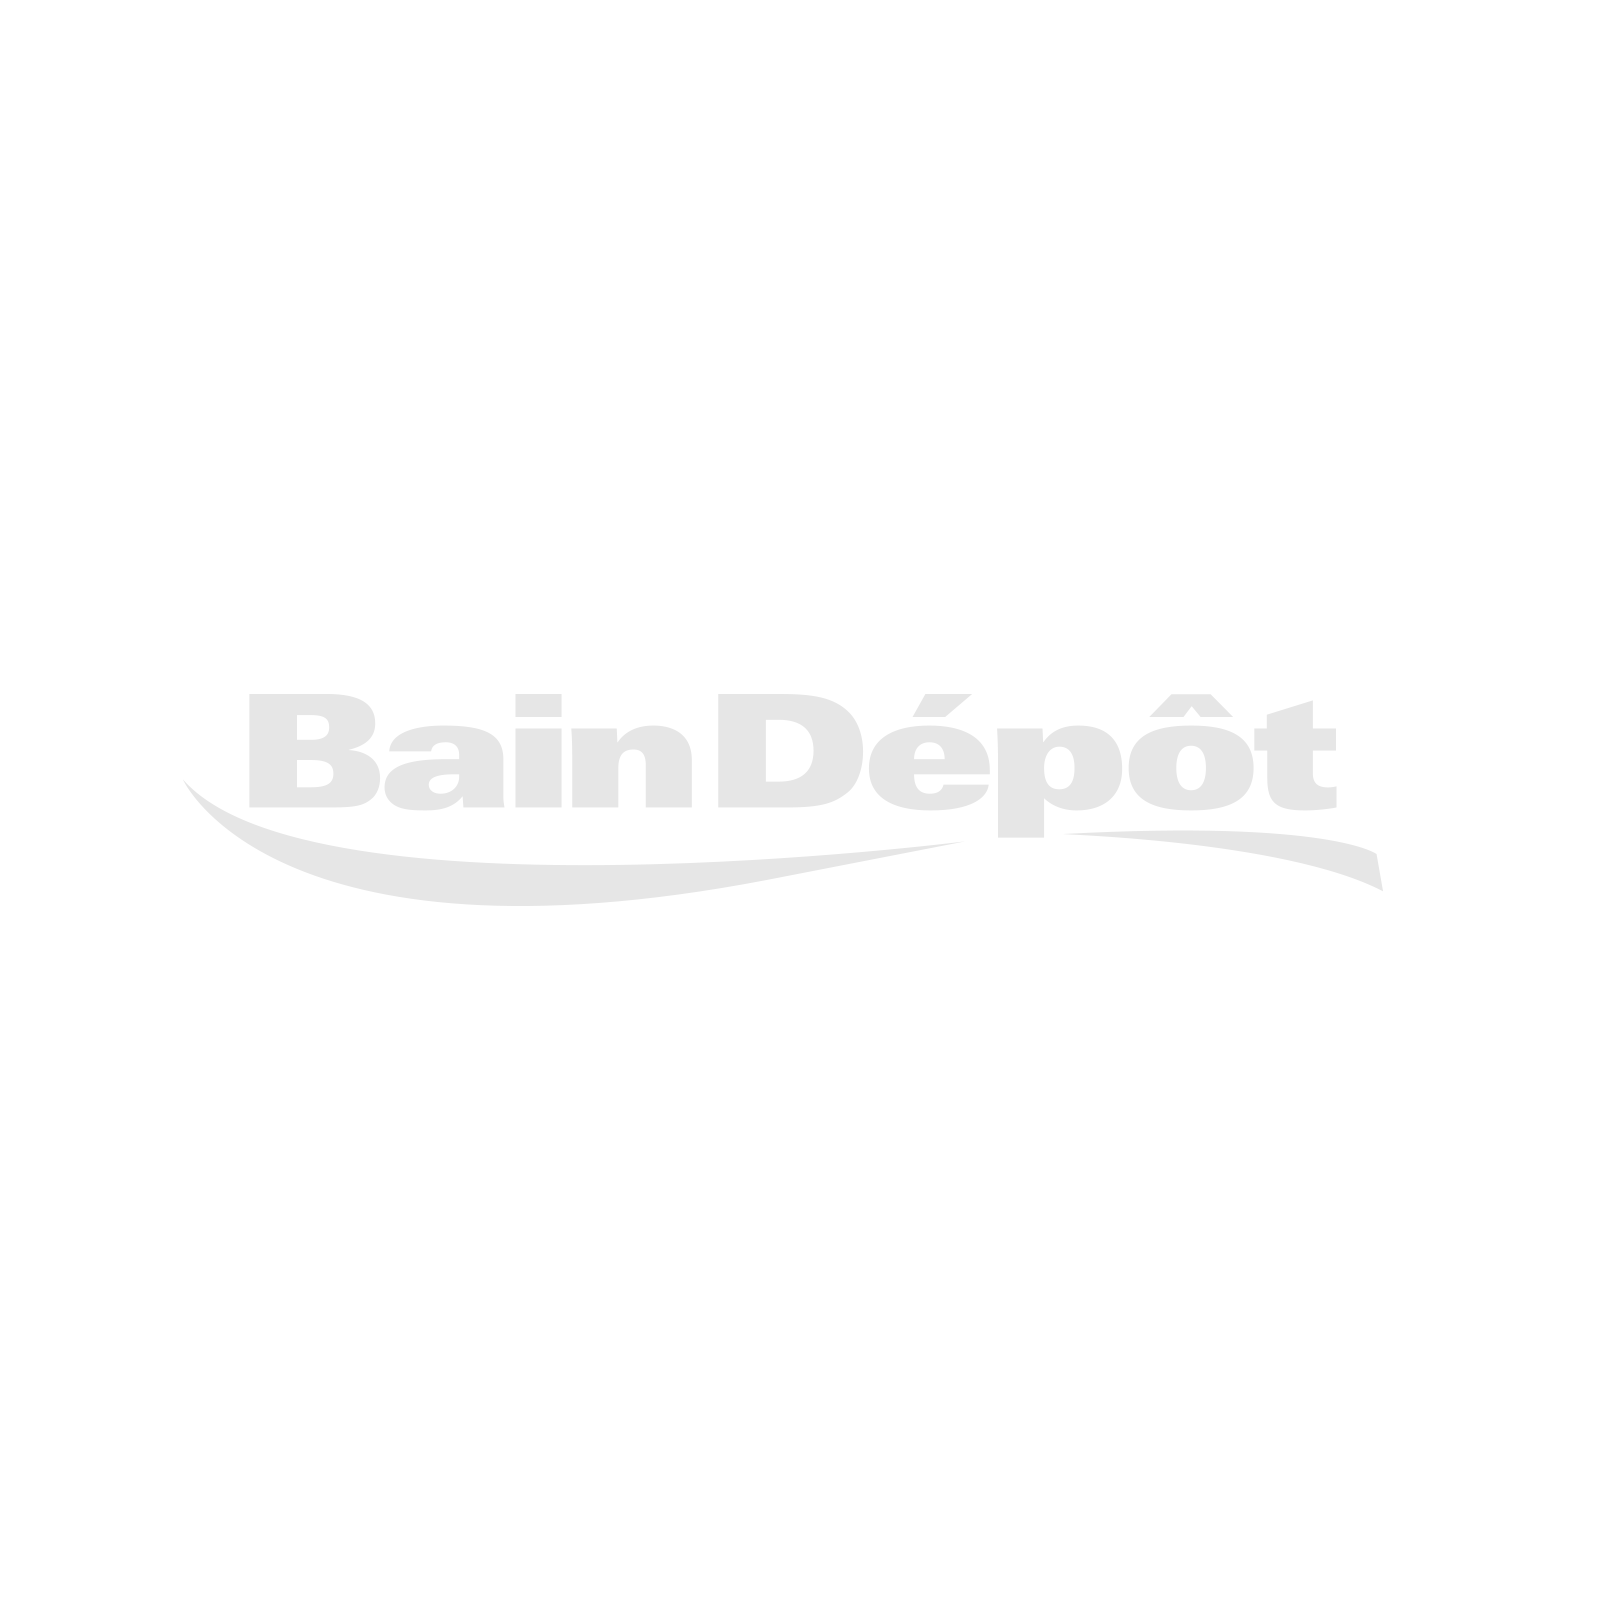 Two-piece single-flush elongated toilet JOH